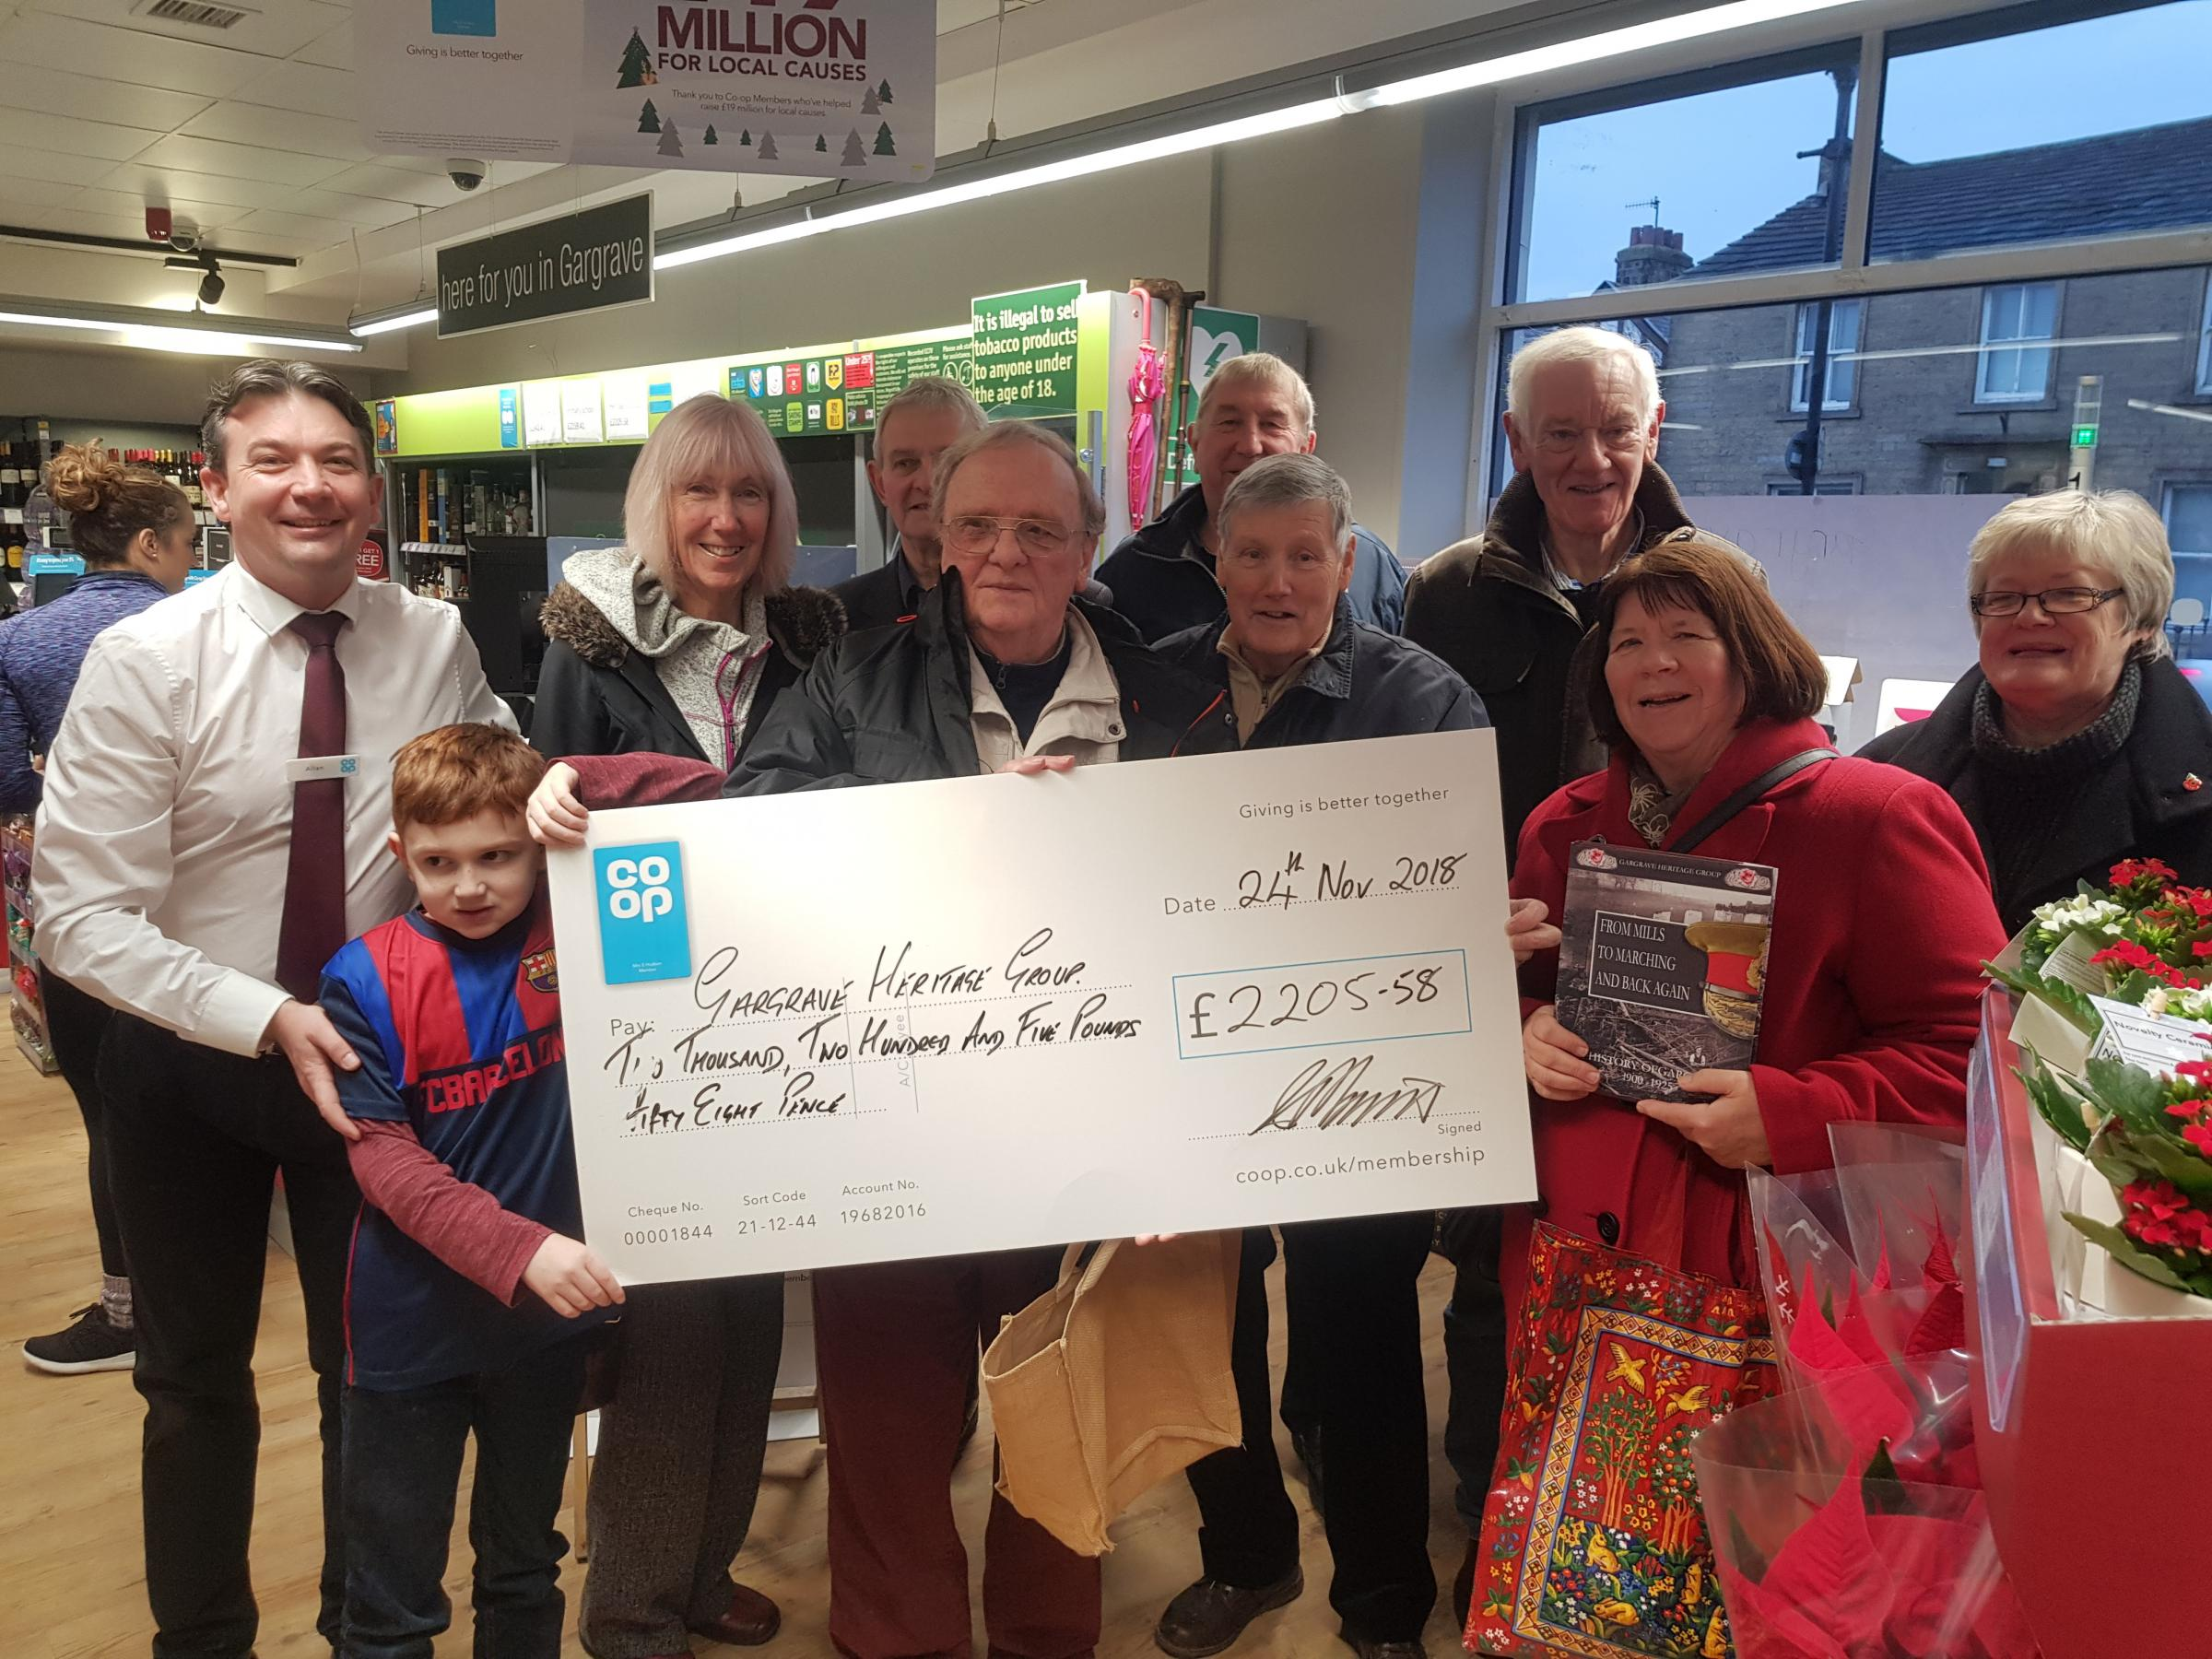 MEMBERS of the Gargrave Heritage Group are presented with a cheque for £2,205.58 by Allan Morris, the manager of the Gargrave branch of the Co-op